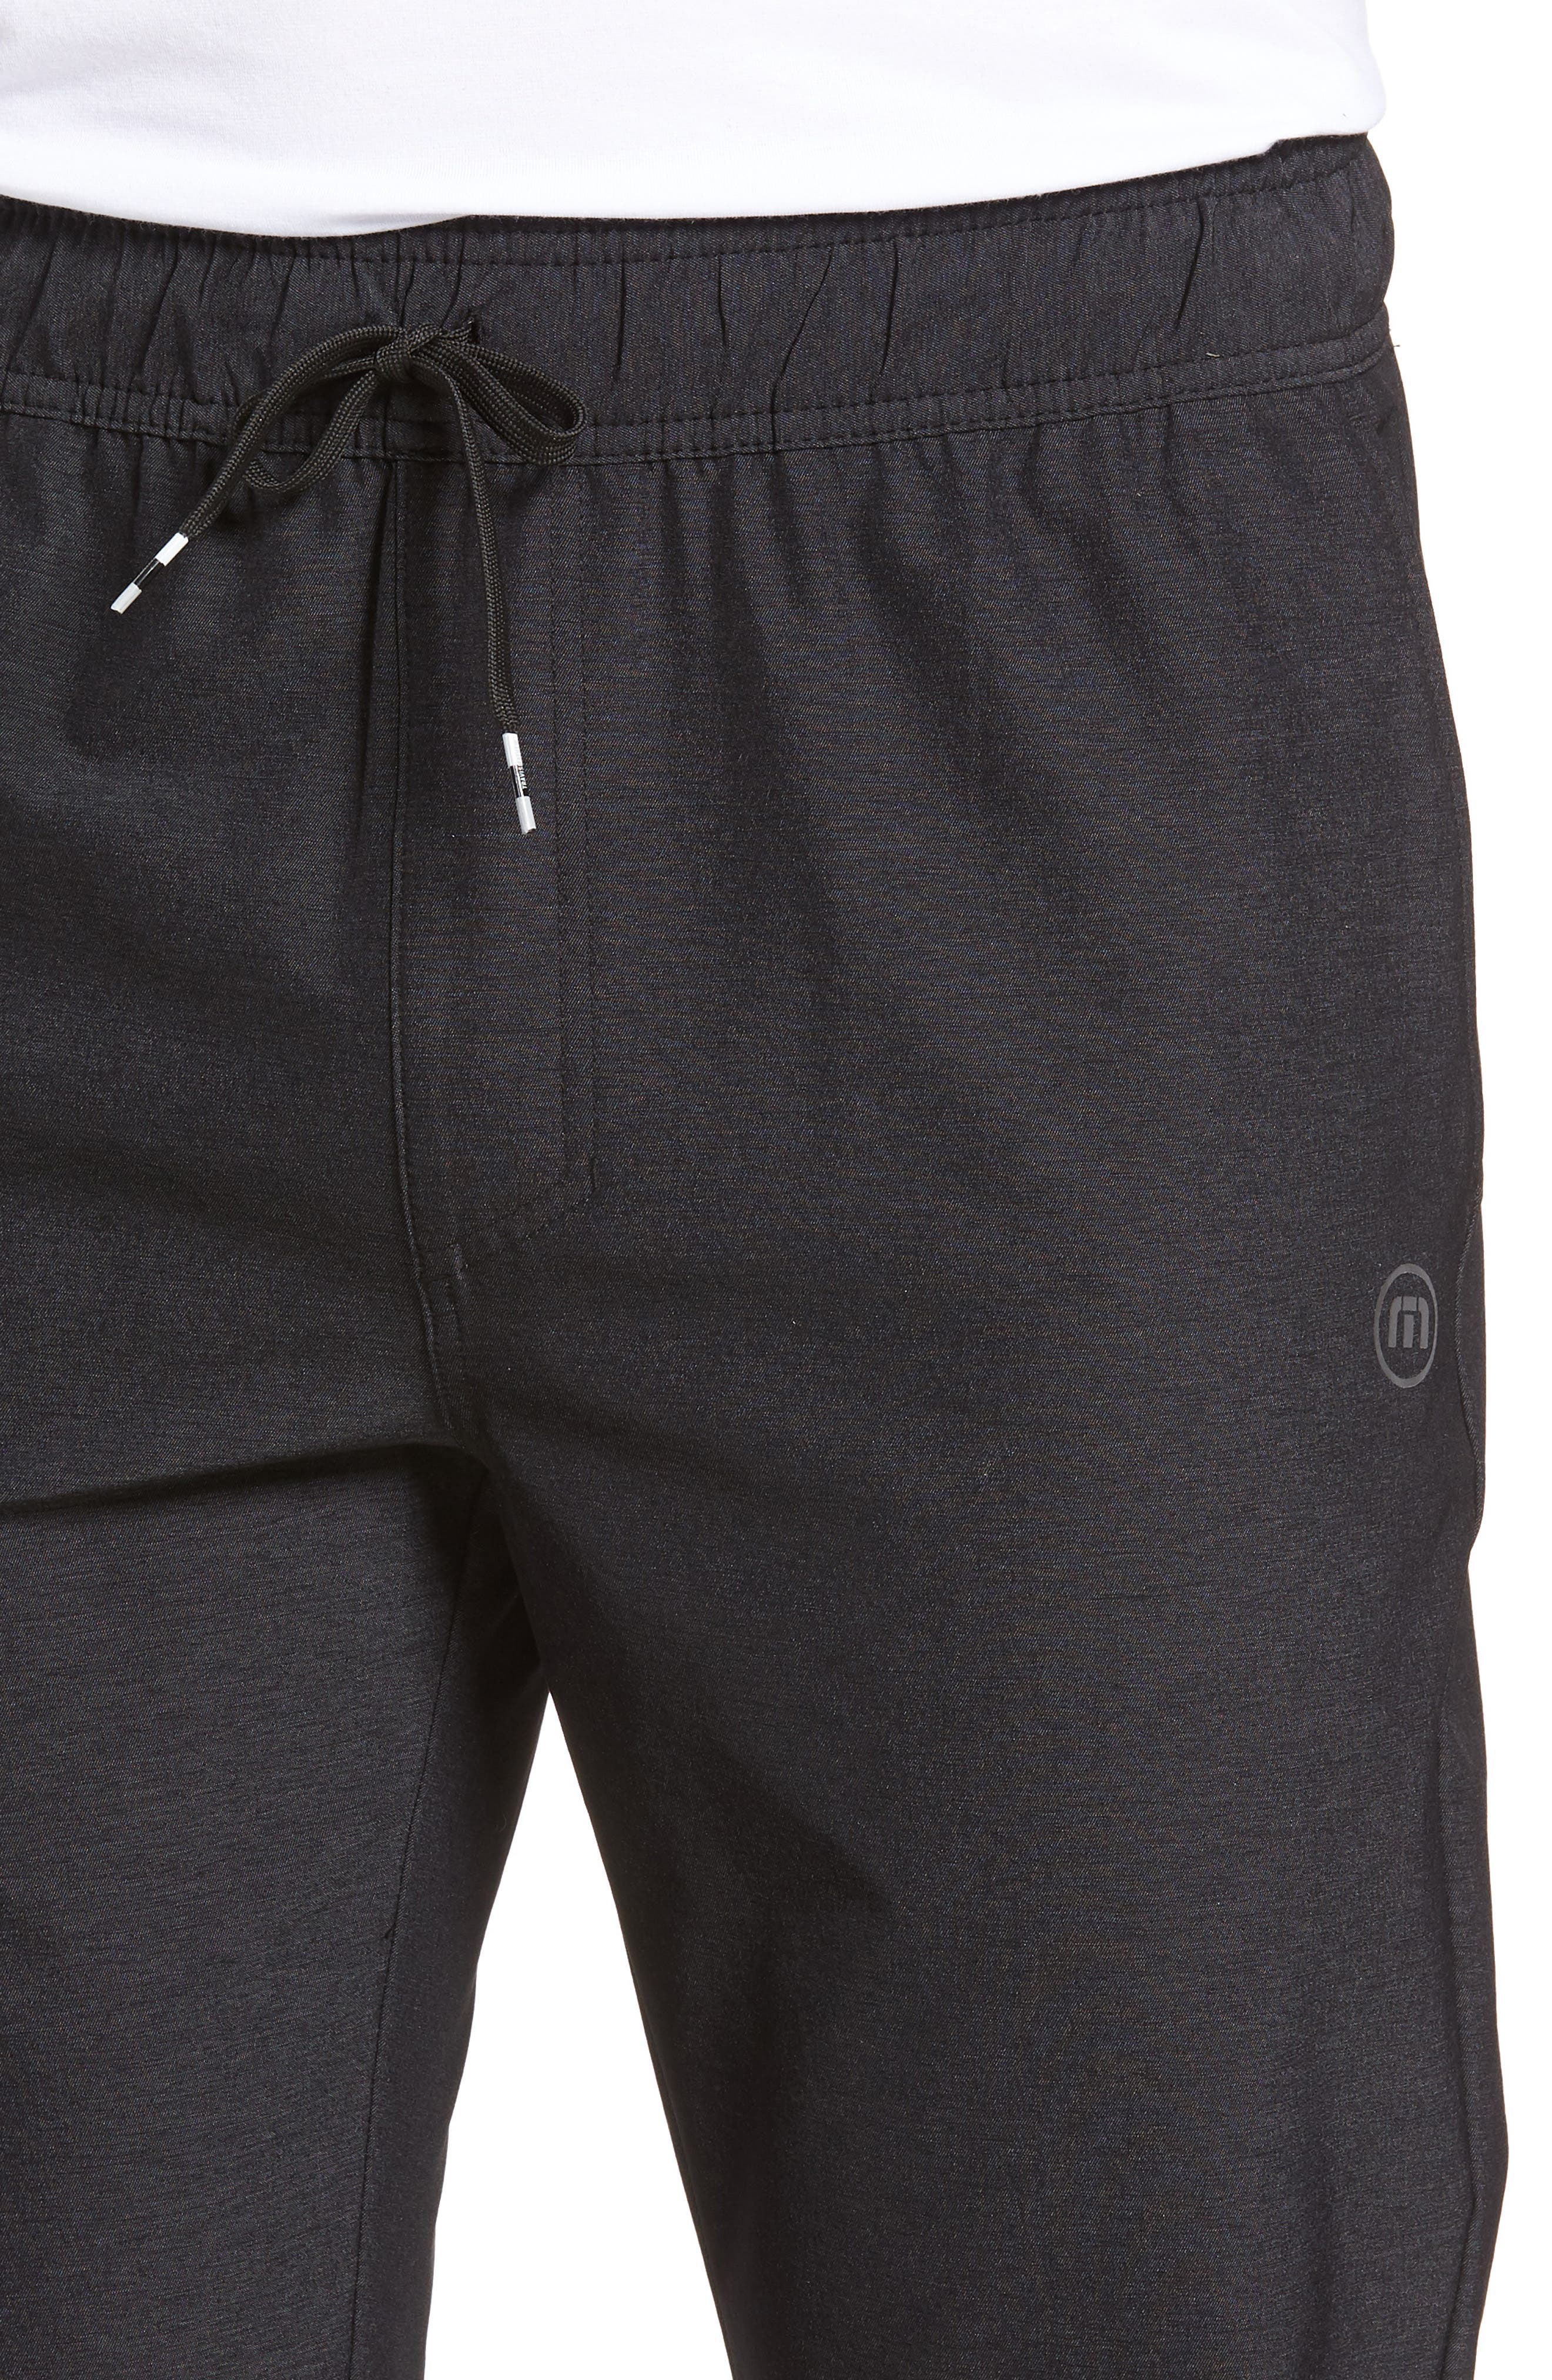 Relay Lounge Pants,                             Alternate thumbnail 4, color,